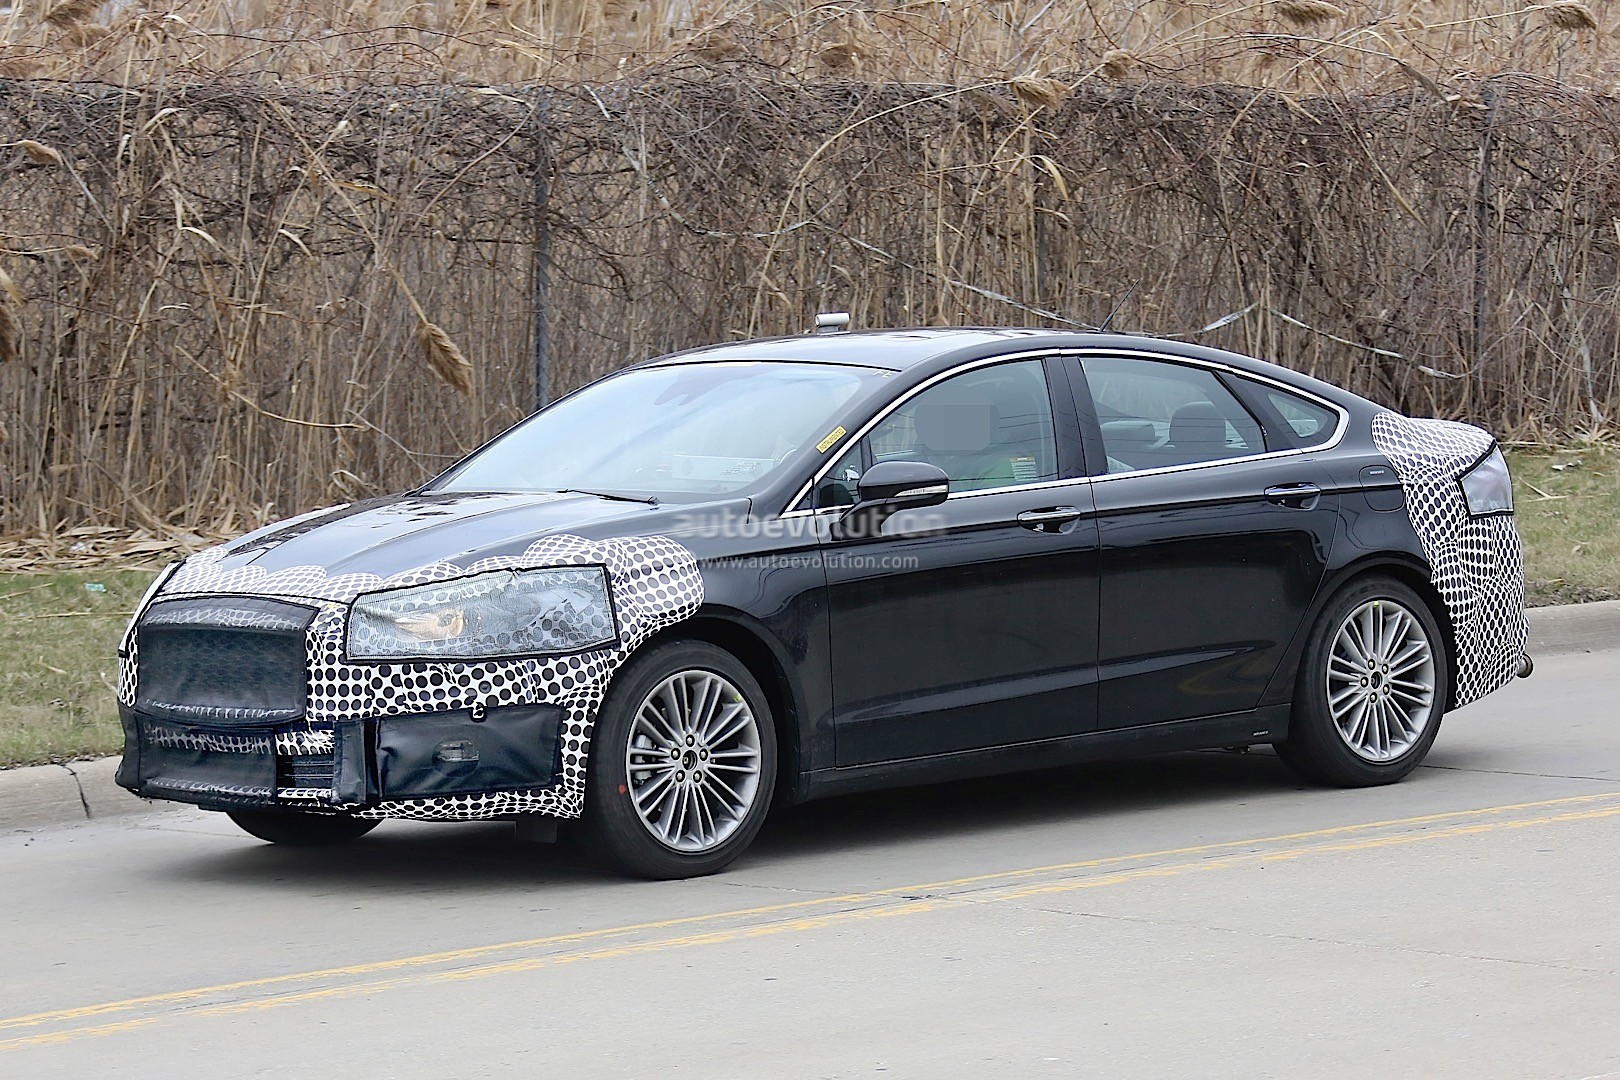 2017 Ford Fusion Mondeo Facelift Spied Autoevolution